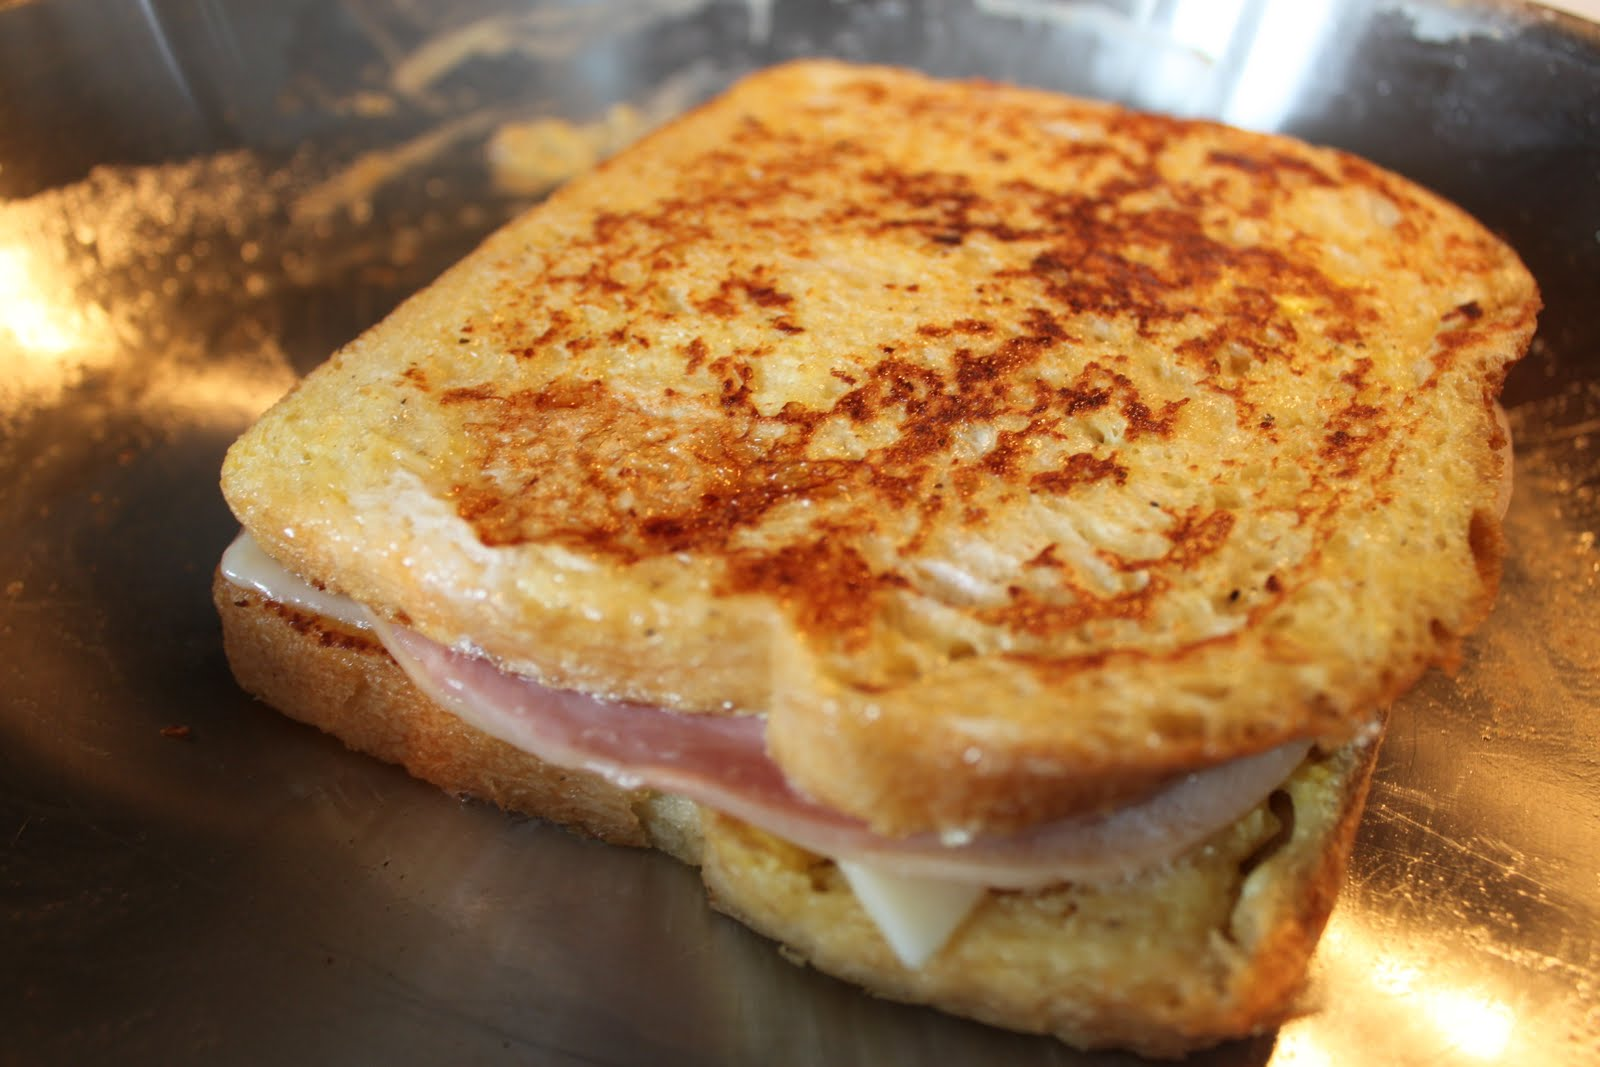 cristo sandwiches monte cristo sandwich fried ham and swiss with red ...